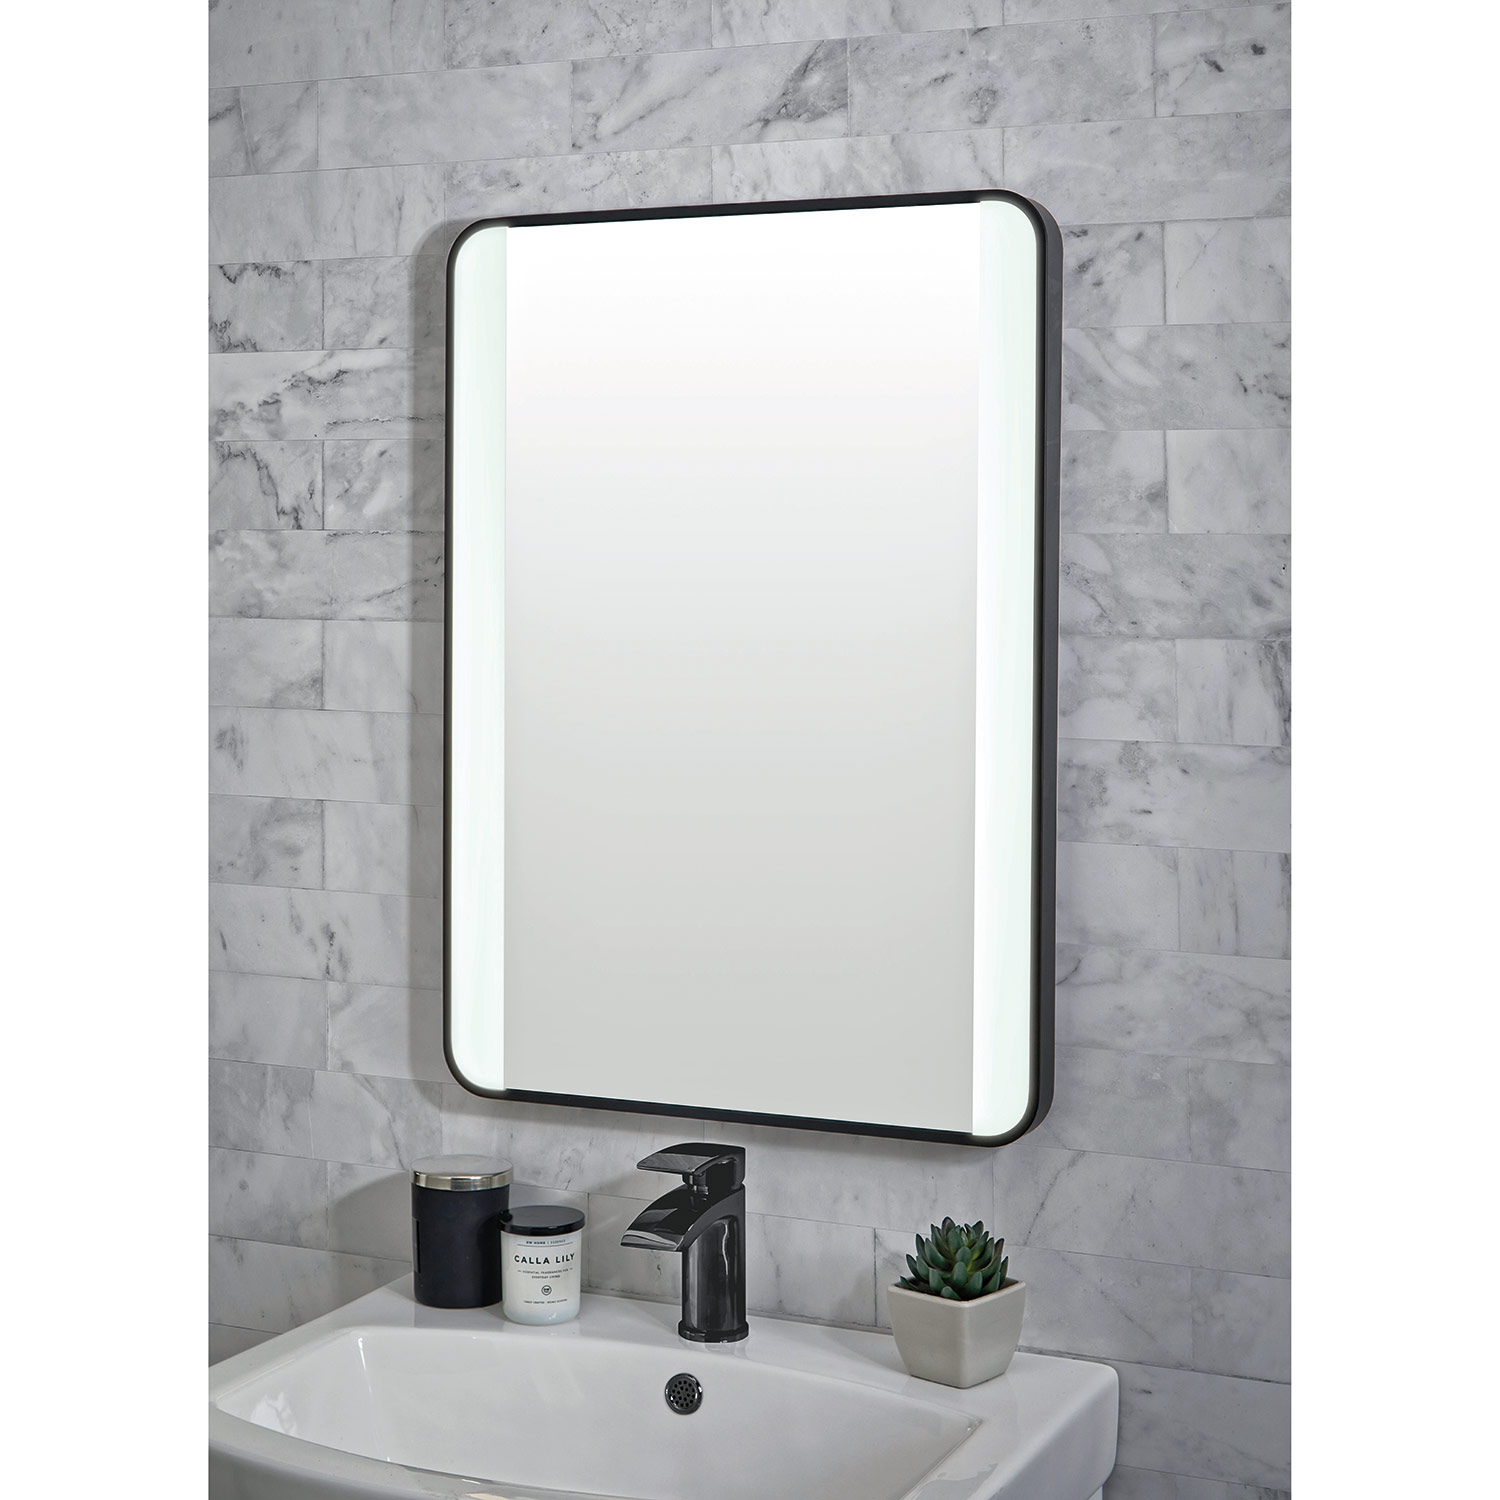 Shield Mono Black Framed Bathroom Mirror with LED Lighting